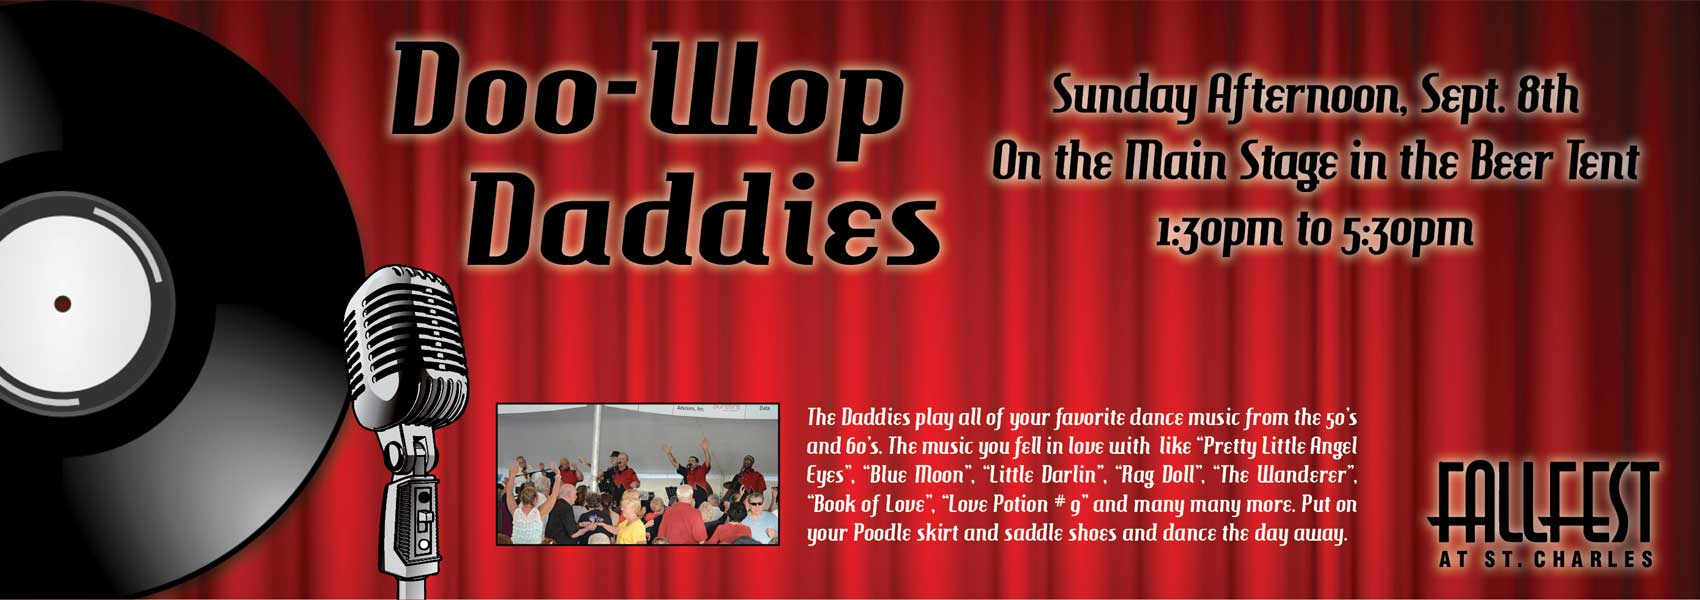 Doo-Wop Daddies - Sunday Sept 8th - 1:30 to 5:30pm - Main Stage